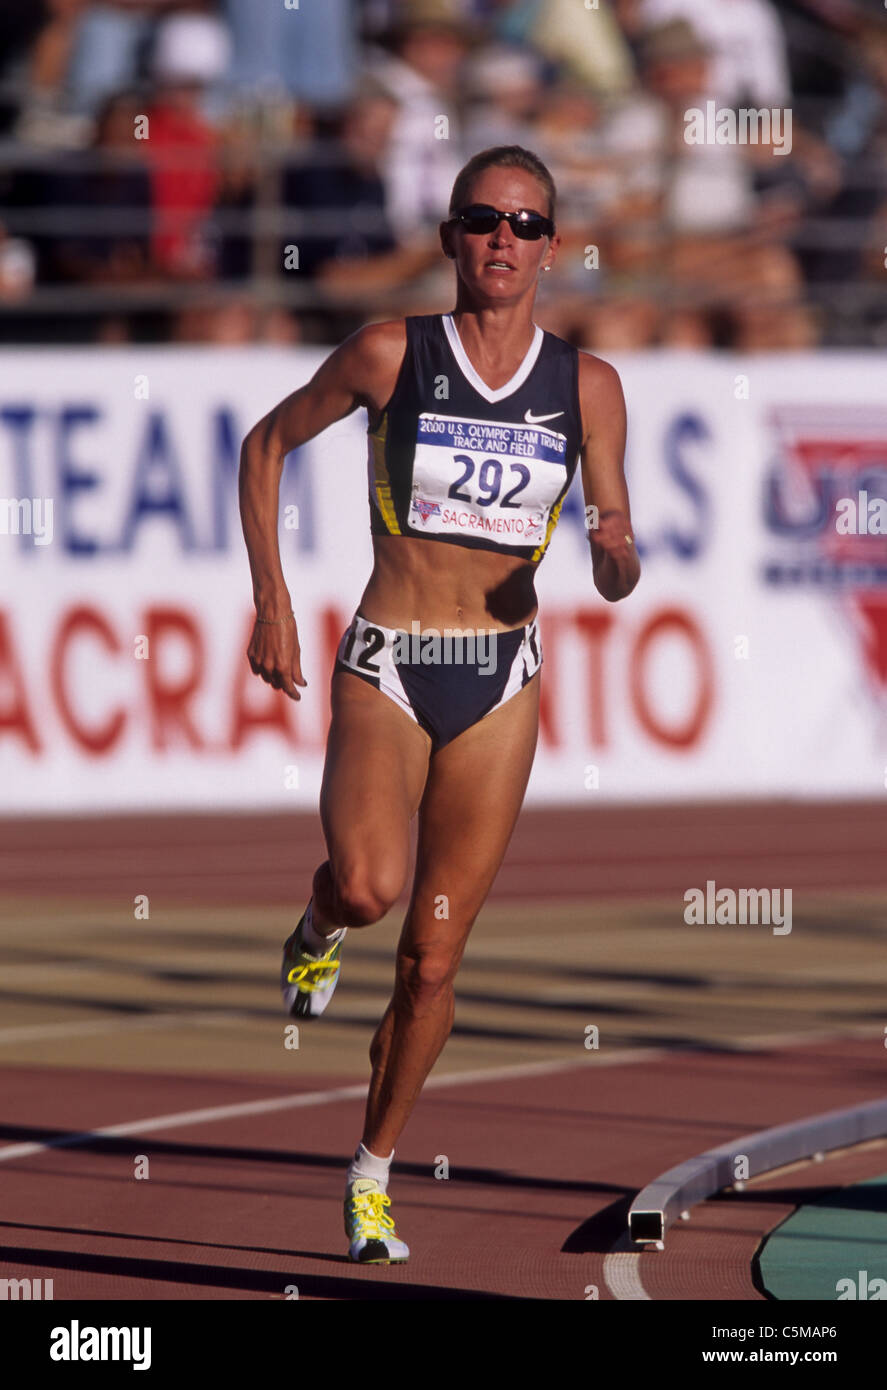 Suzy Favor Hamilton (USA) competing at the 2000 US Olympic Track and ...